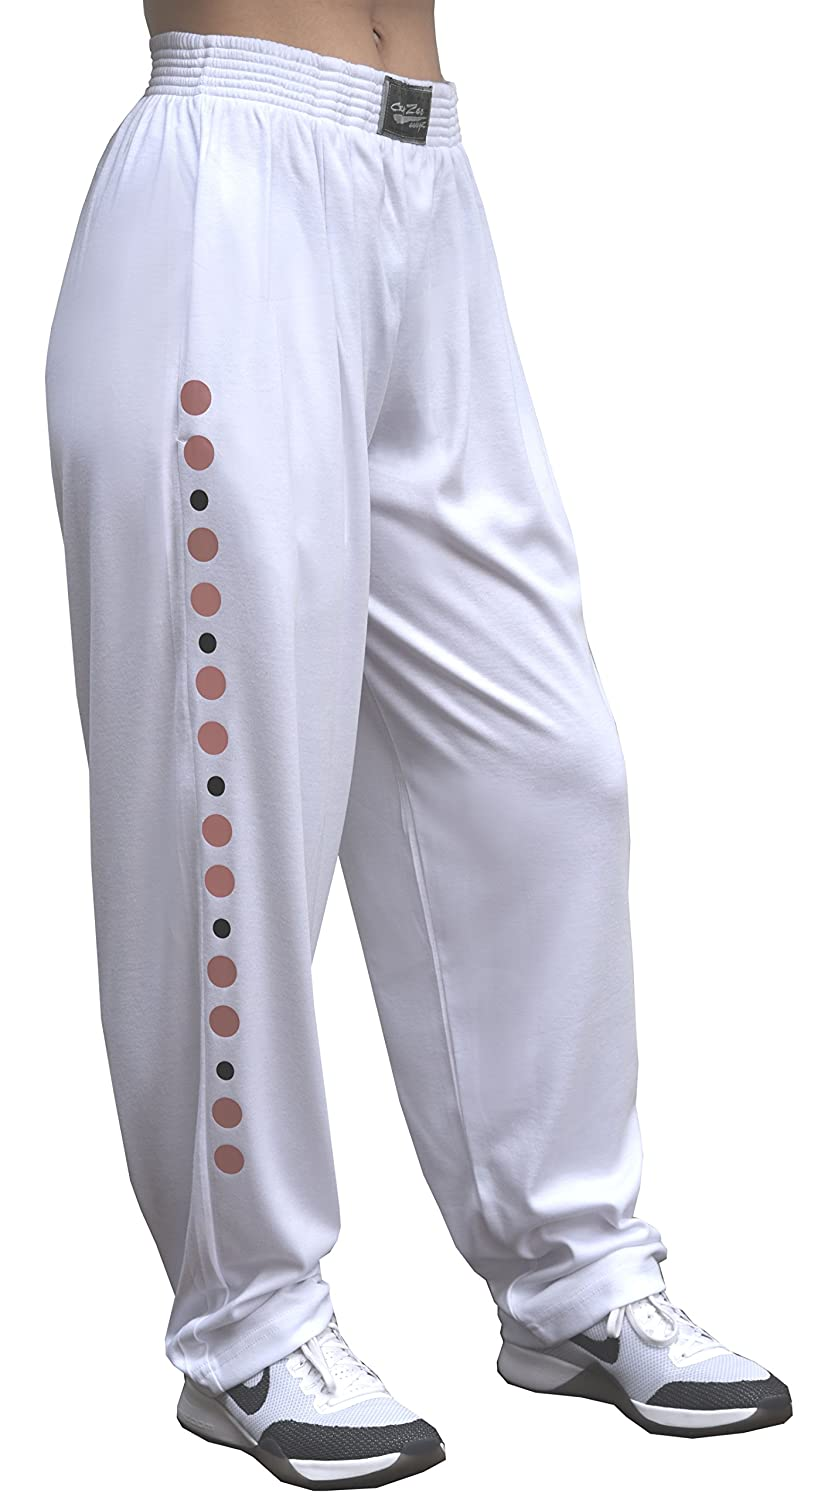 e228e52dcc2c Classic Soft White Relaxed Fit Baggy Pants For Men And Women With Universal  Rose Gold Design at Amazon Women's Clothing store: